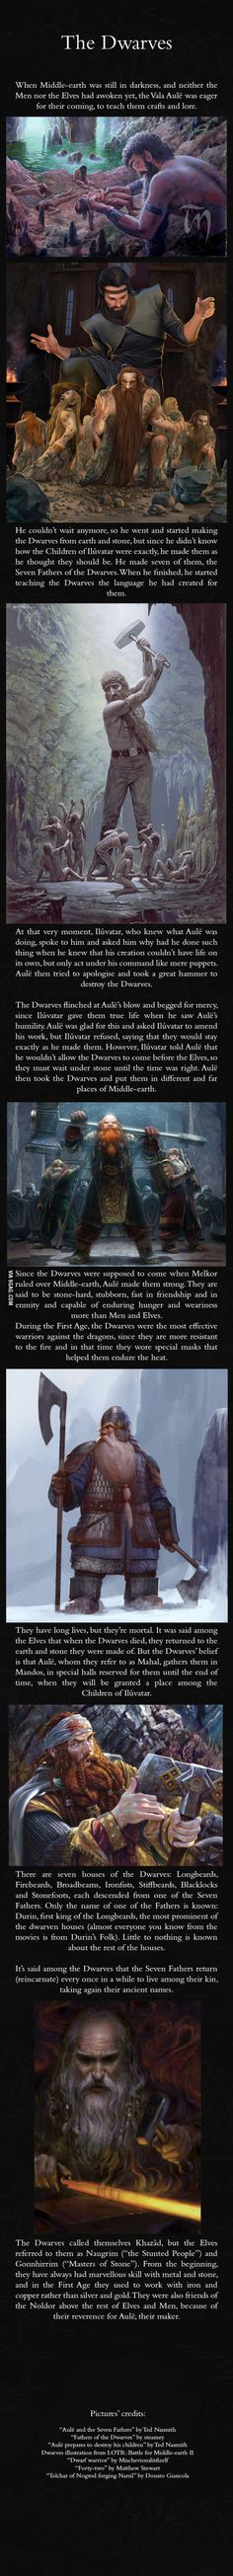 Dwarves - J.R.R. Tolkien's Mythology